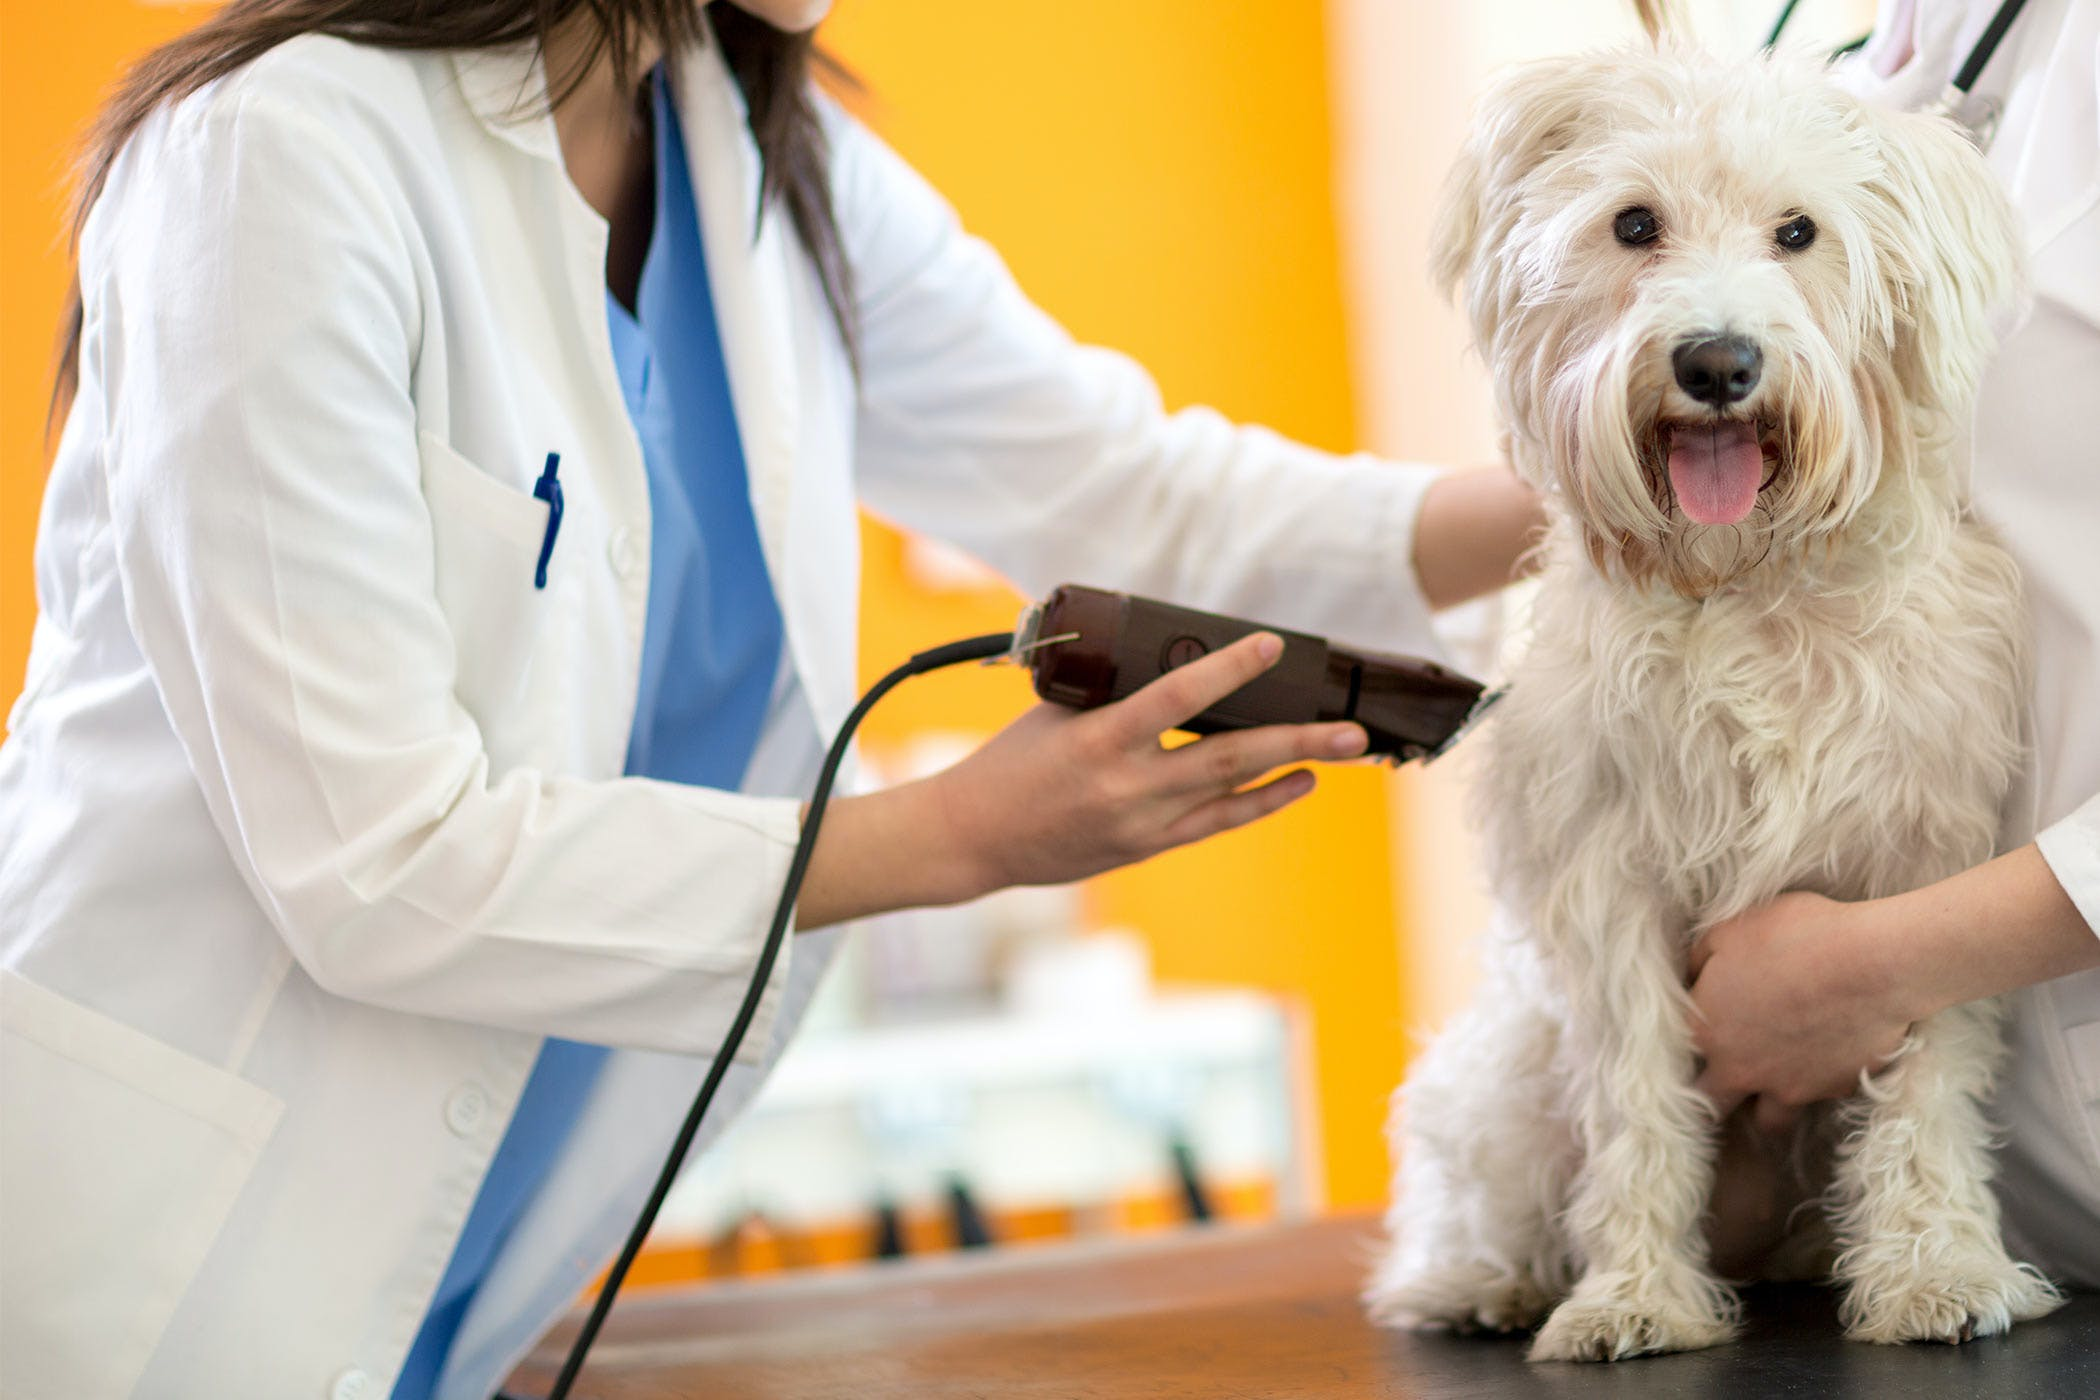 How to groom a dog using clippers solutioingenieria Image collections